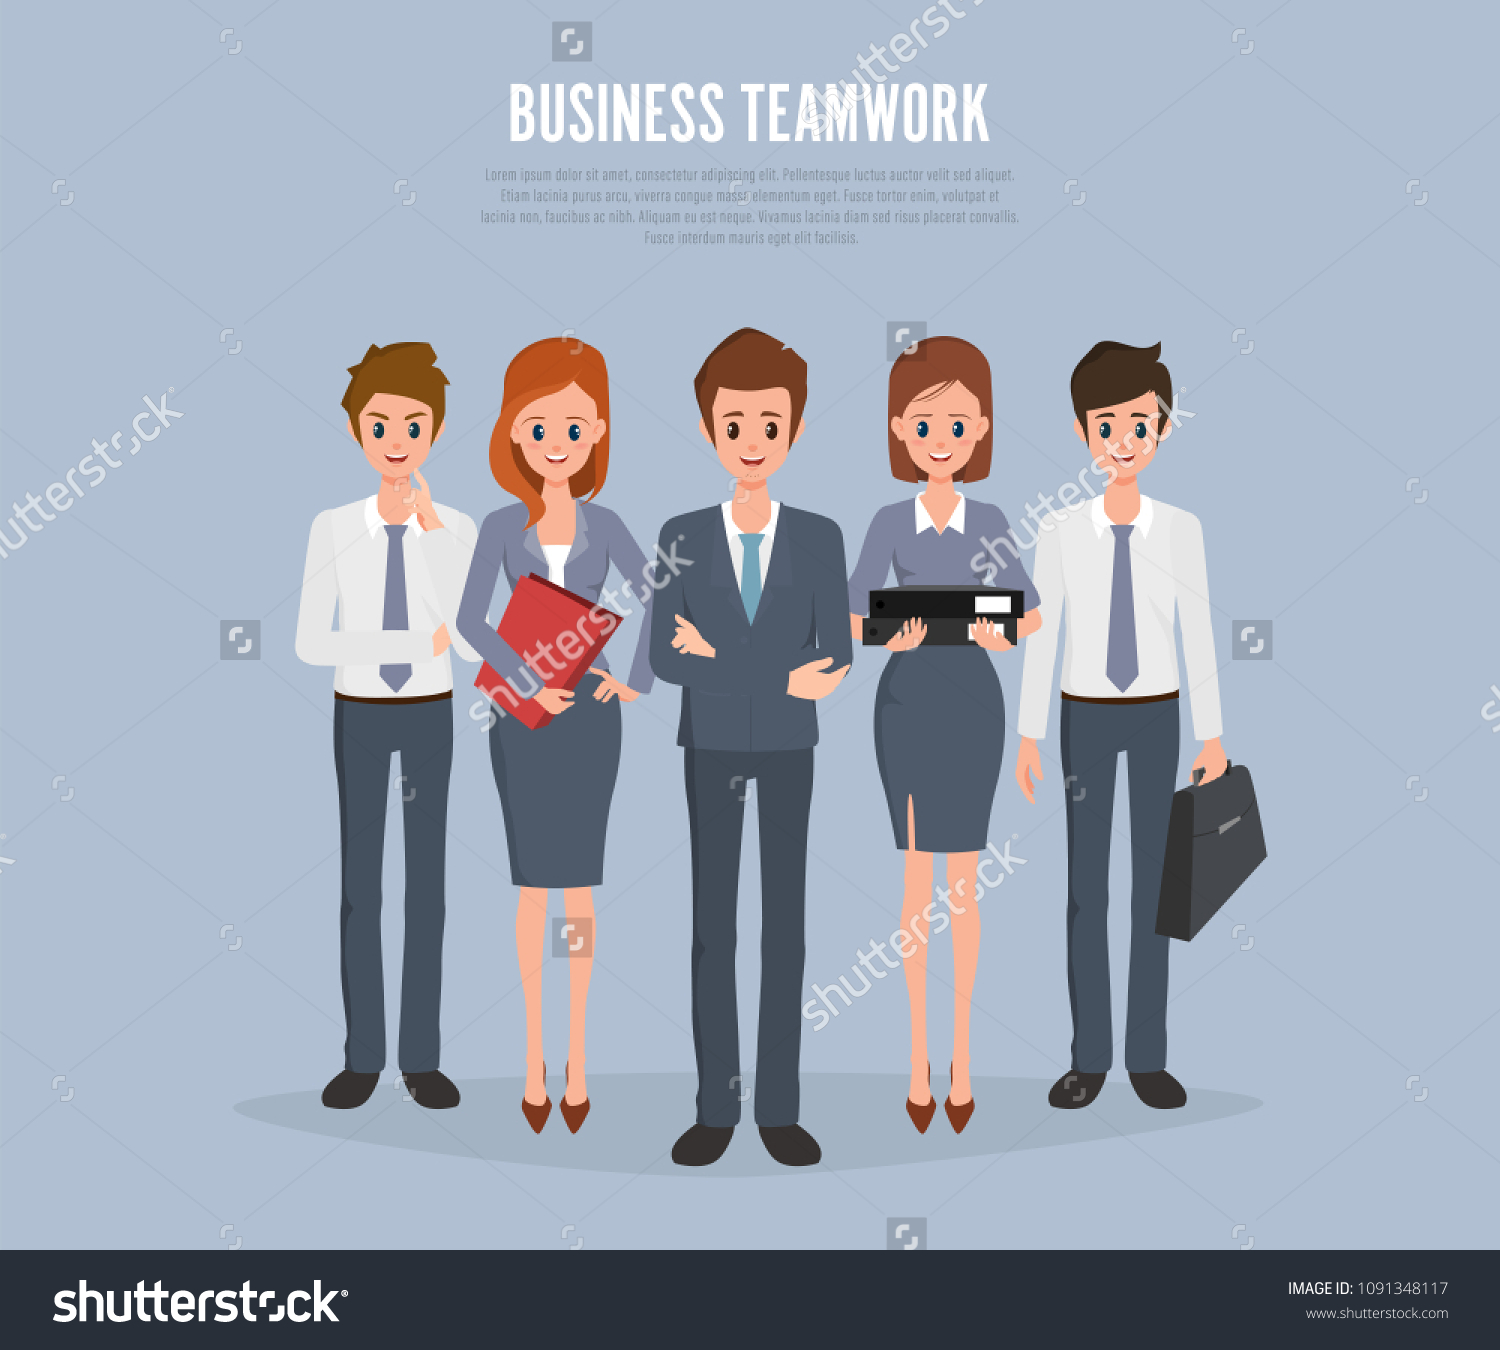 25+ Team Corporate Cartoon Wallpapers